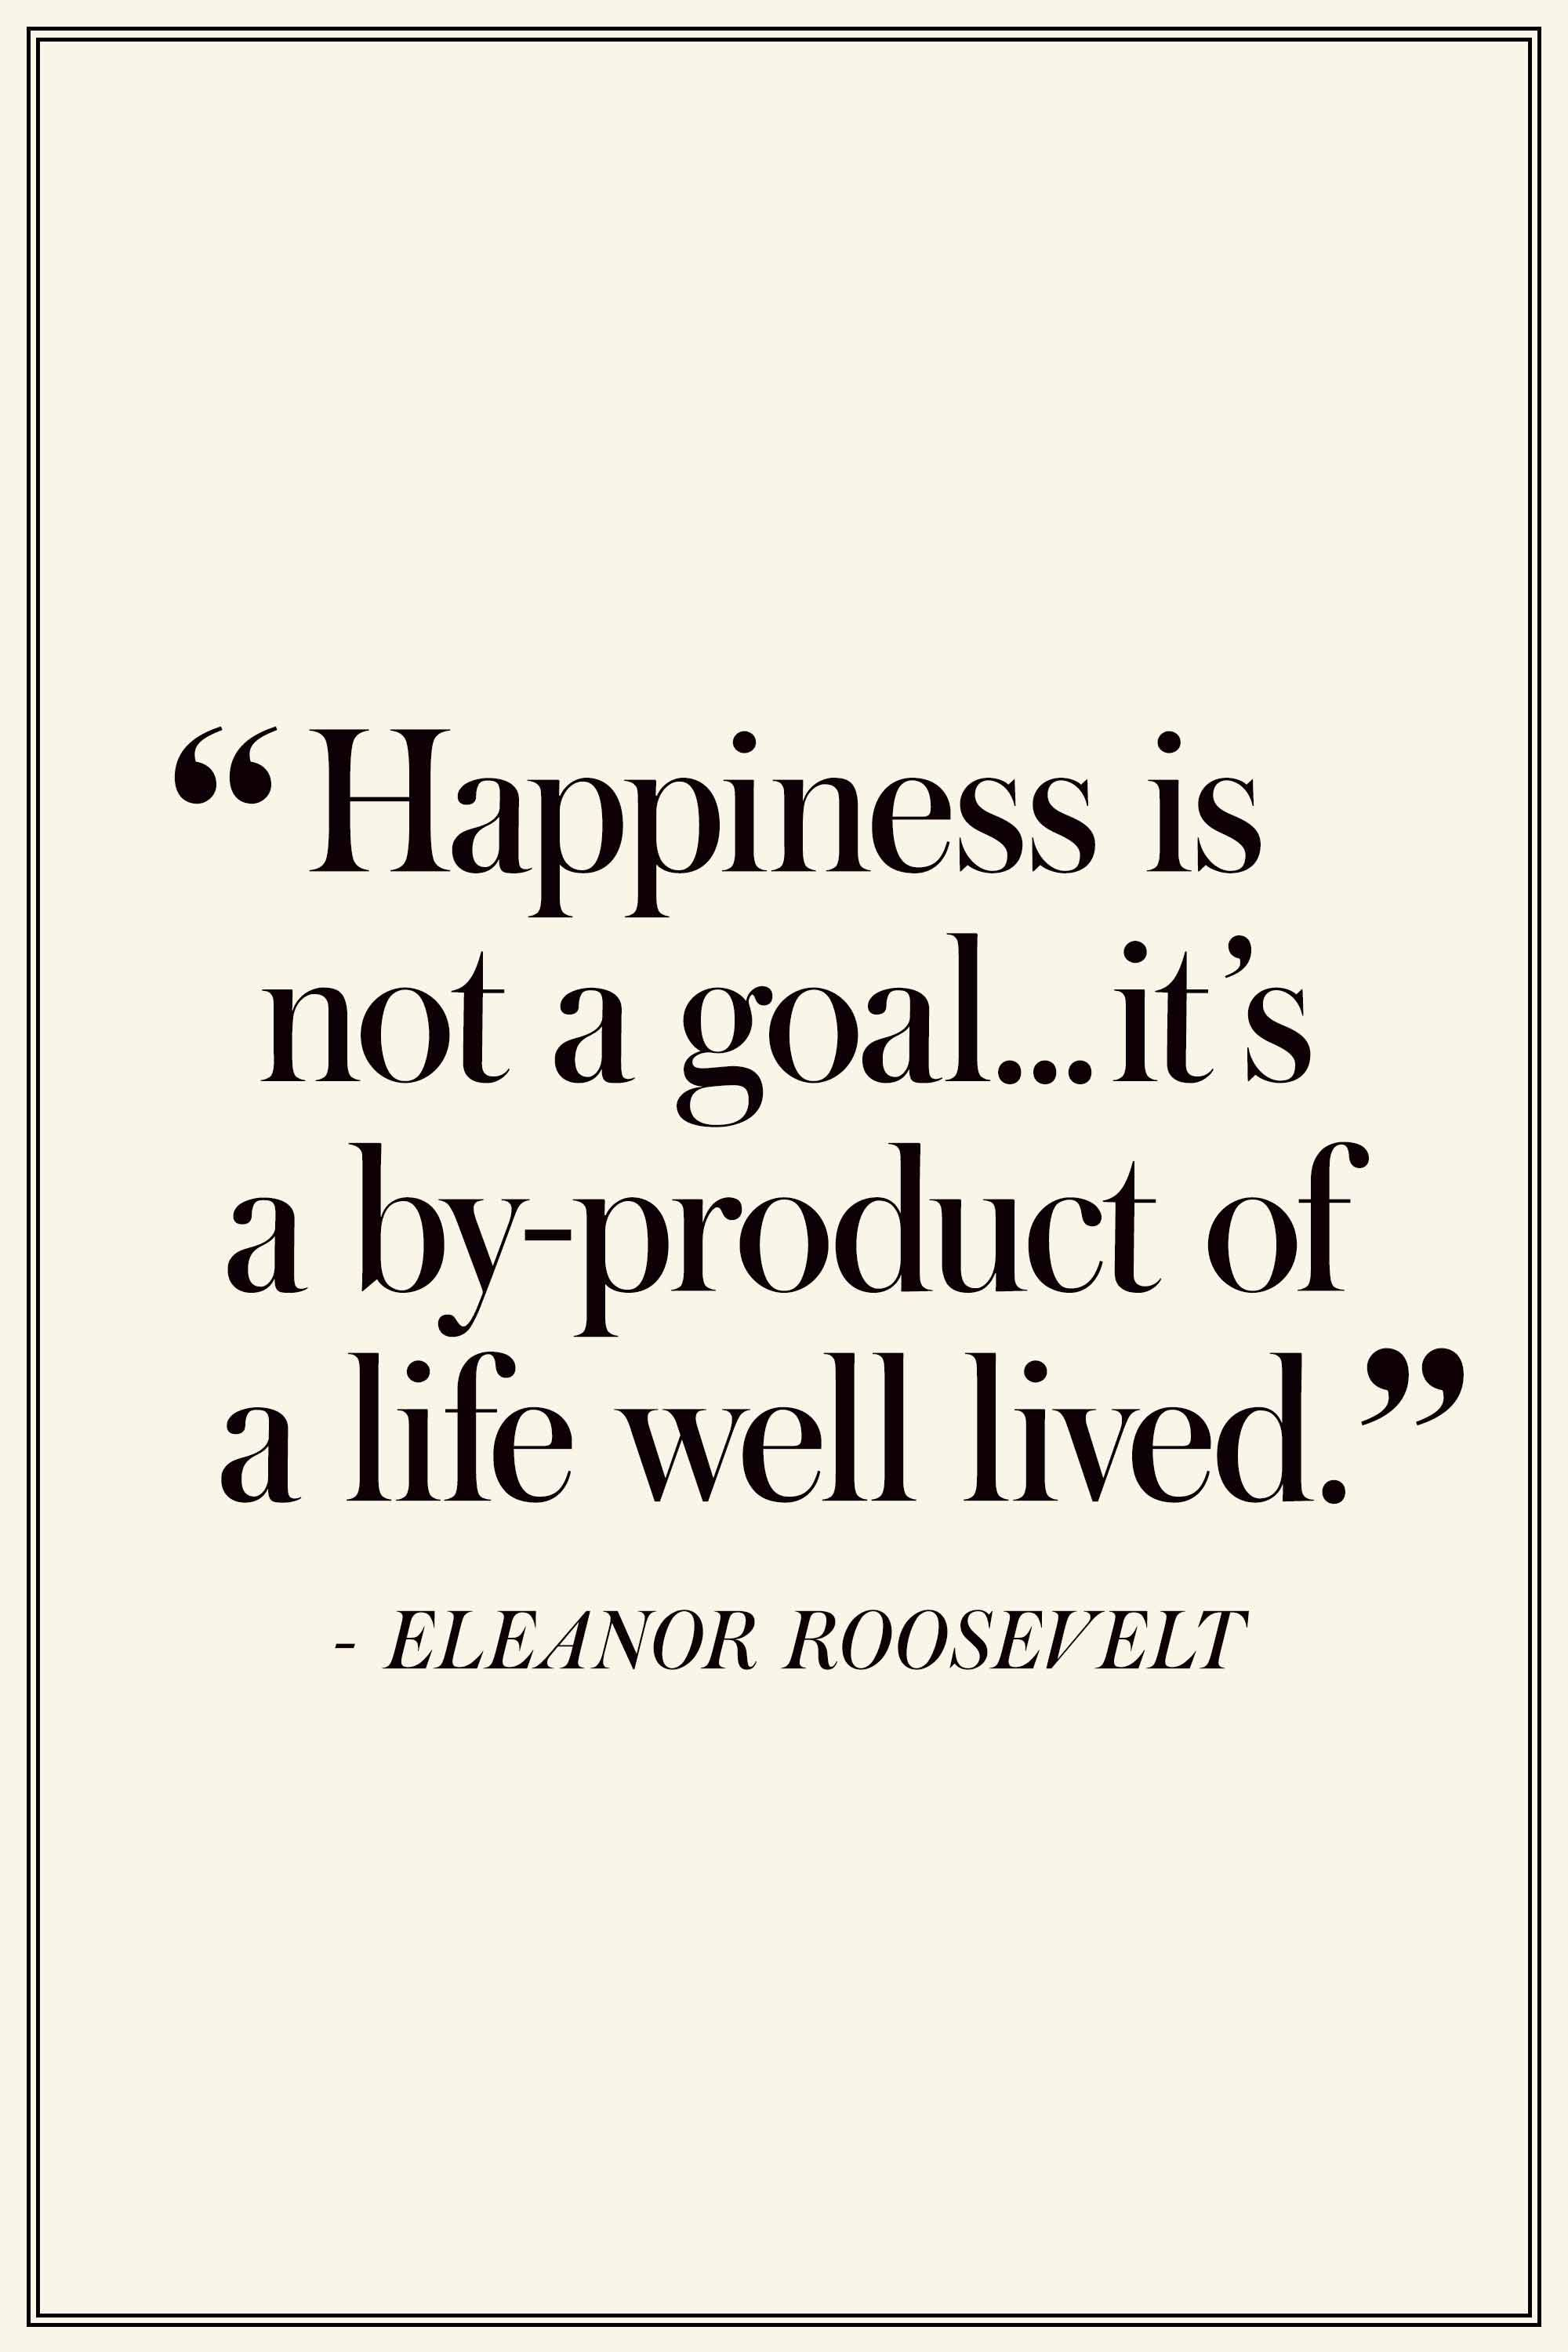 Best Quotes On Happiness Famous Quotes About Happiness